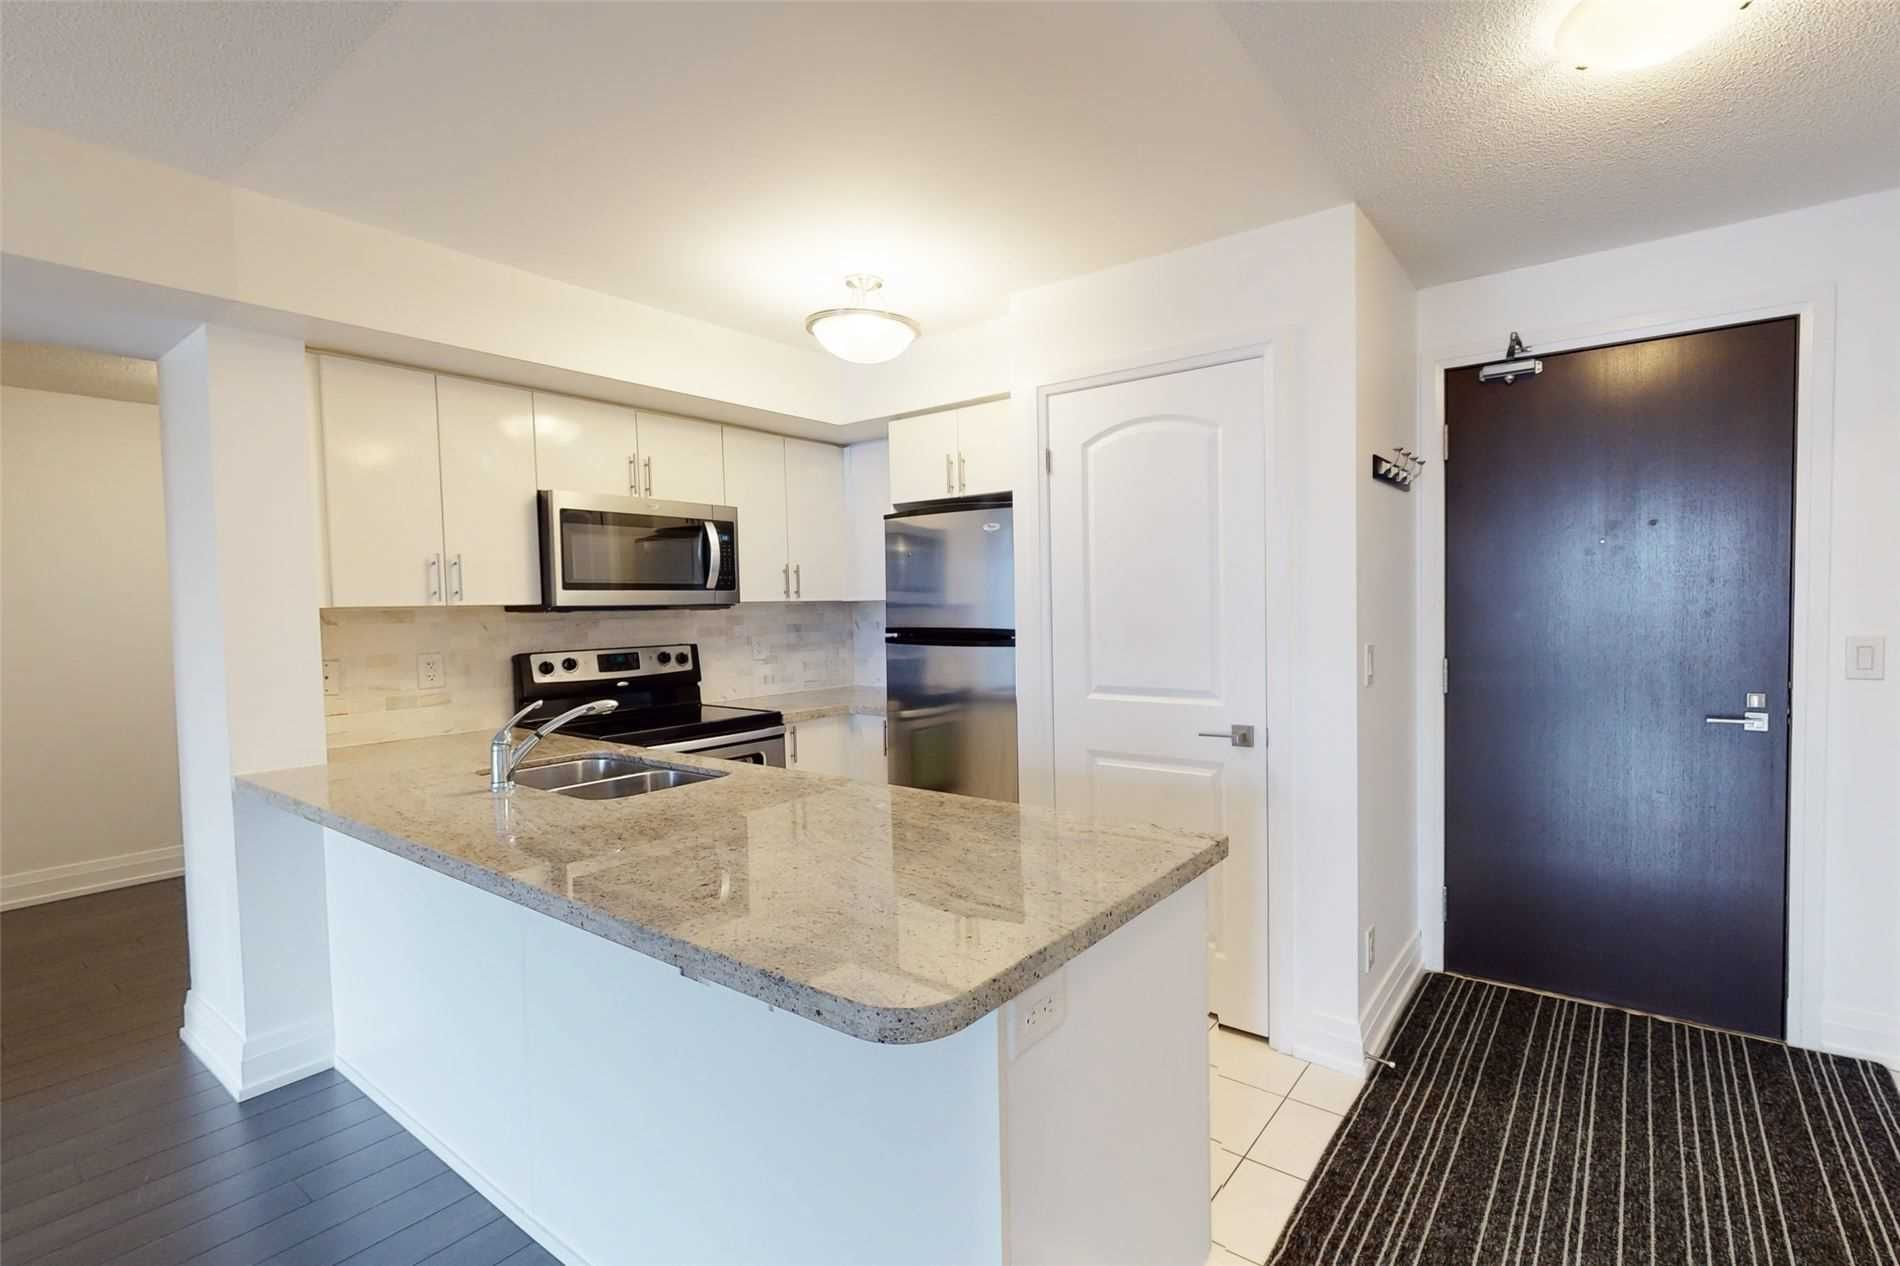 1060 Sheppard Ave W, unit 1420 for sale in Toronto - image #2